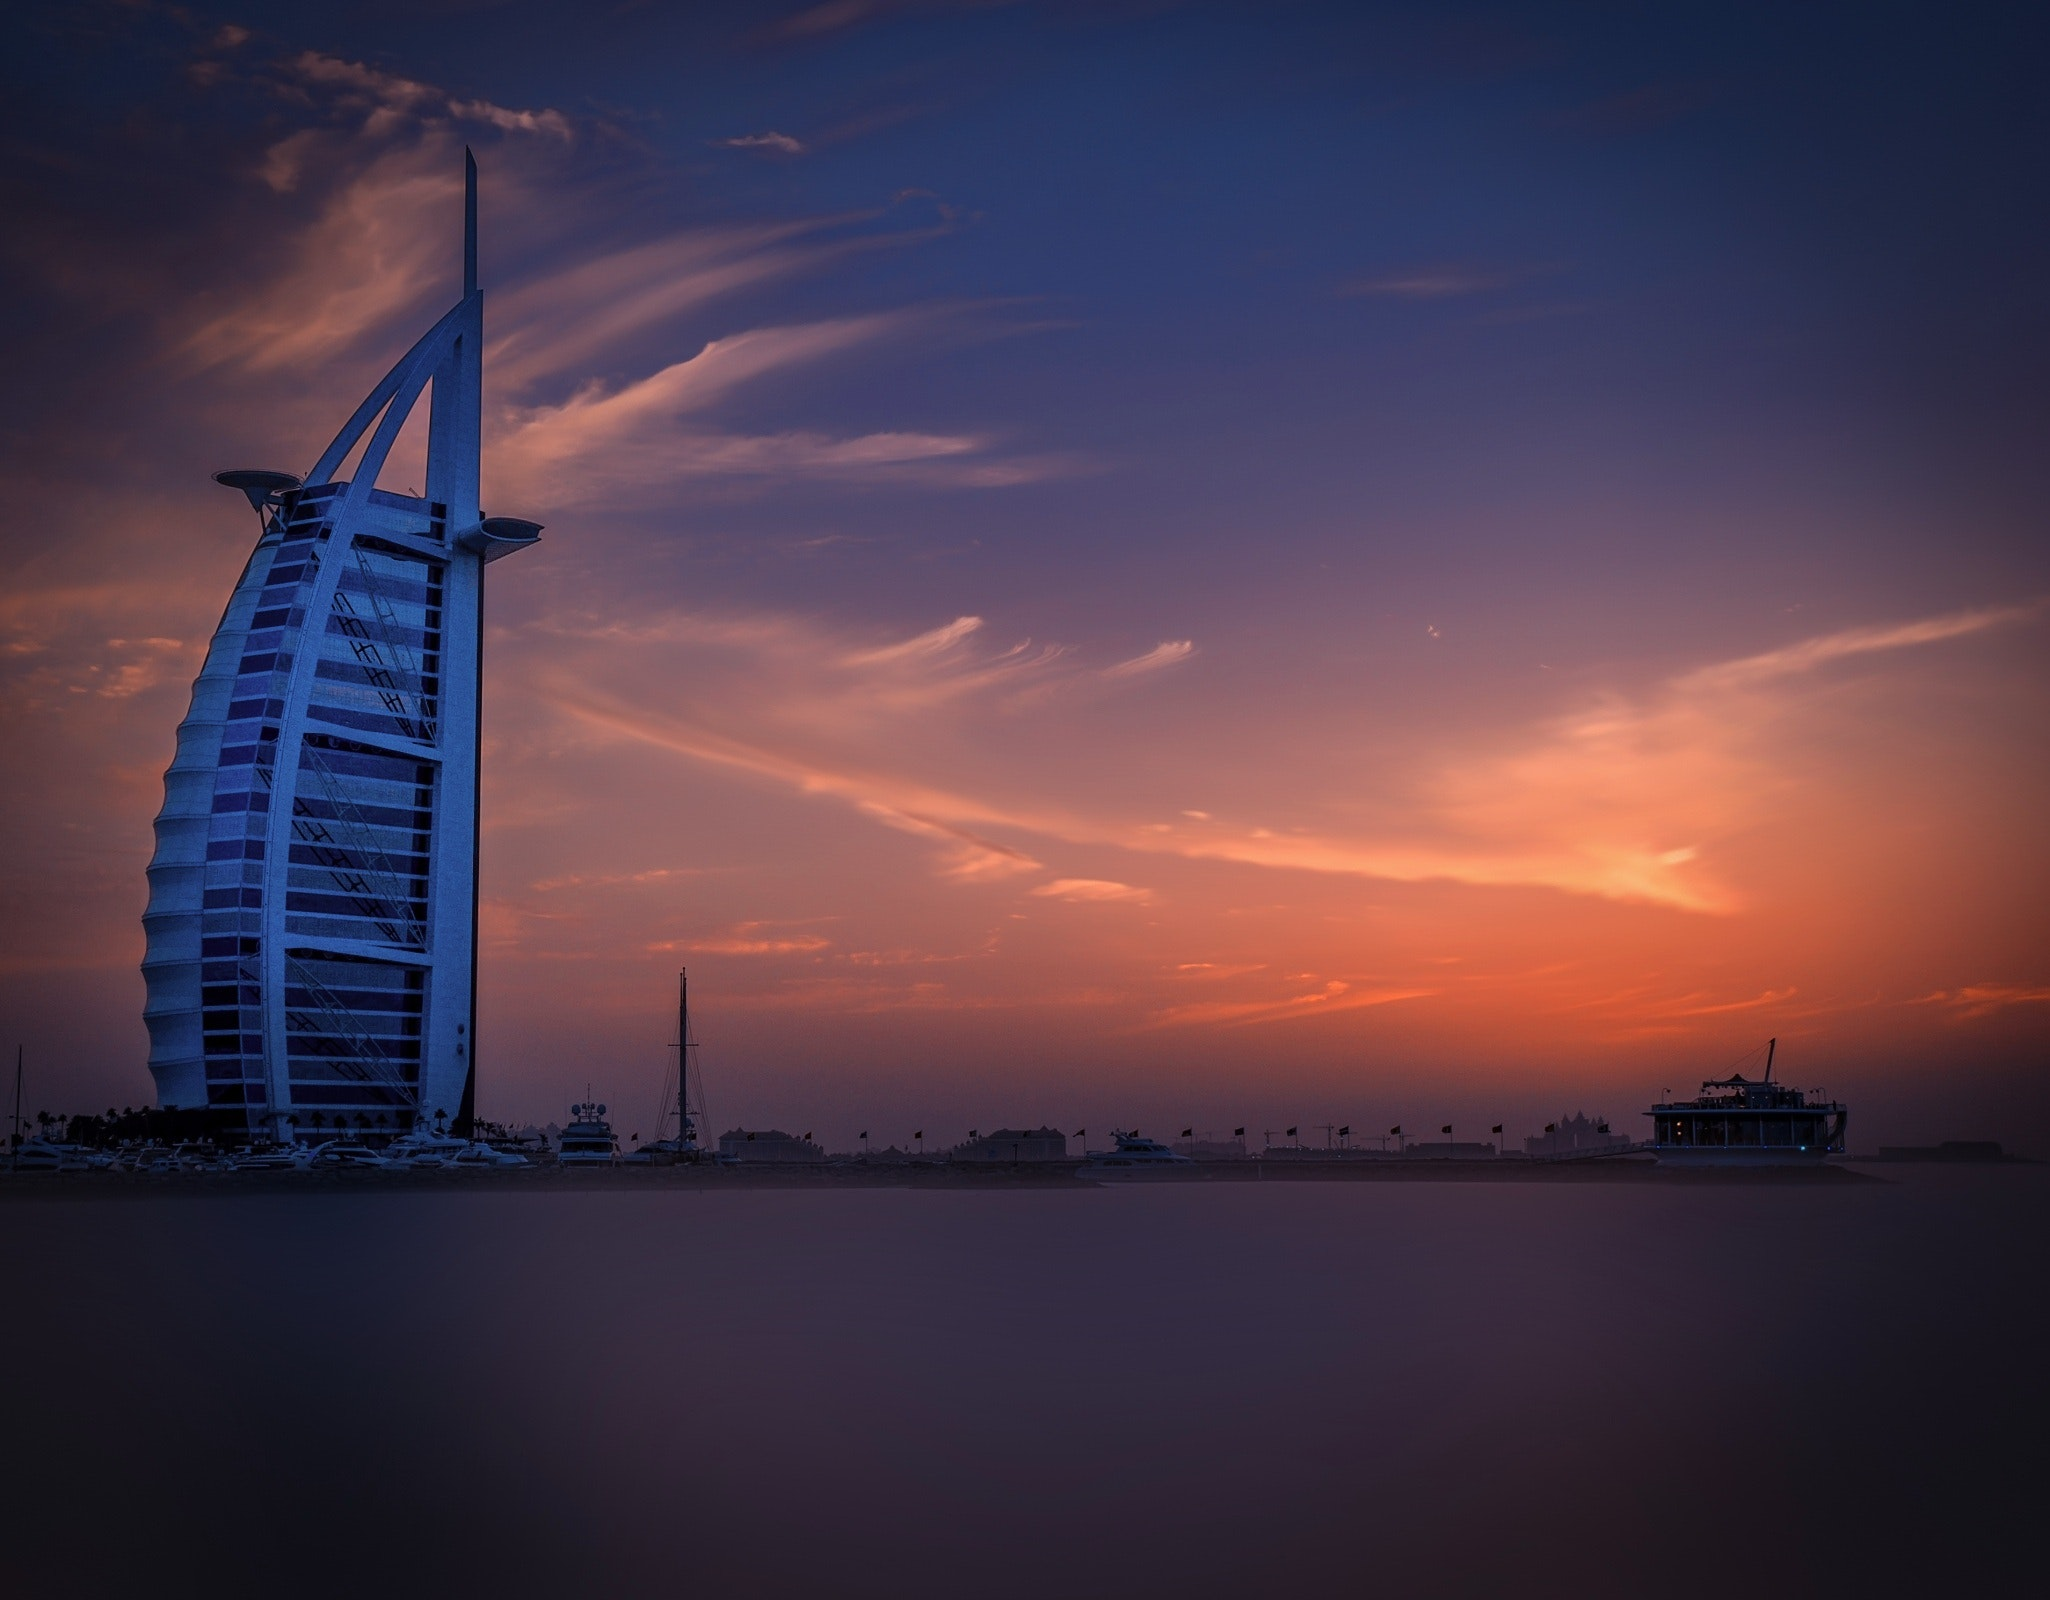 Scenic View of City at Sunset, Architectural design, Landscape, Light, Luxury, HQ Photo